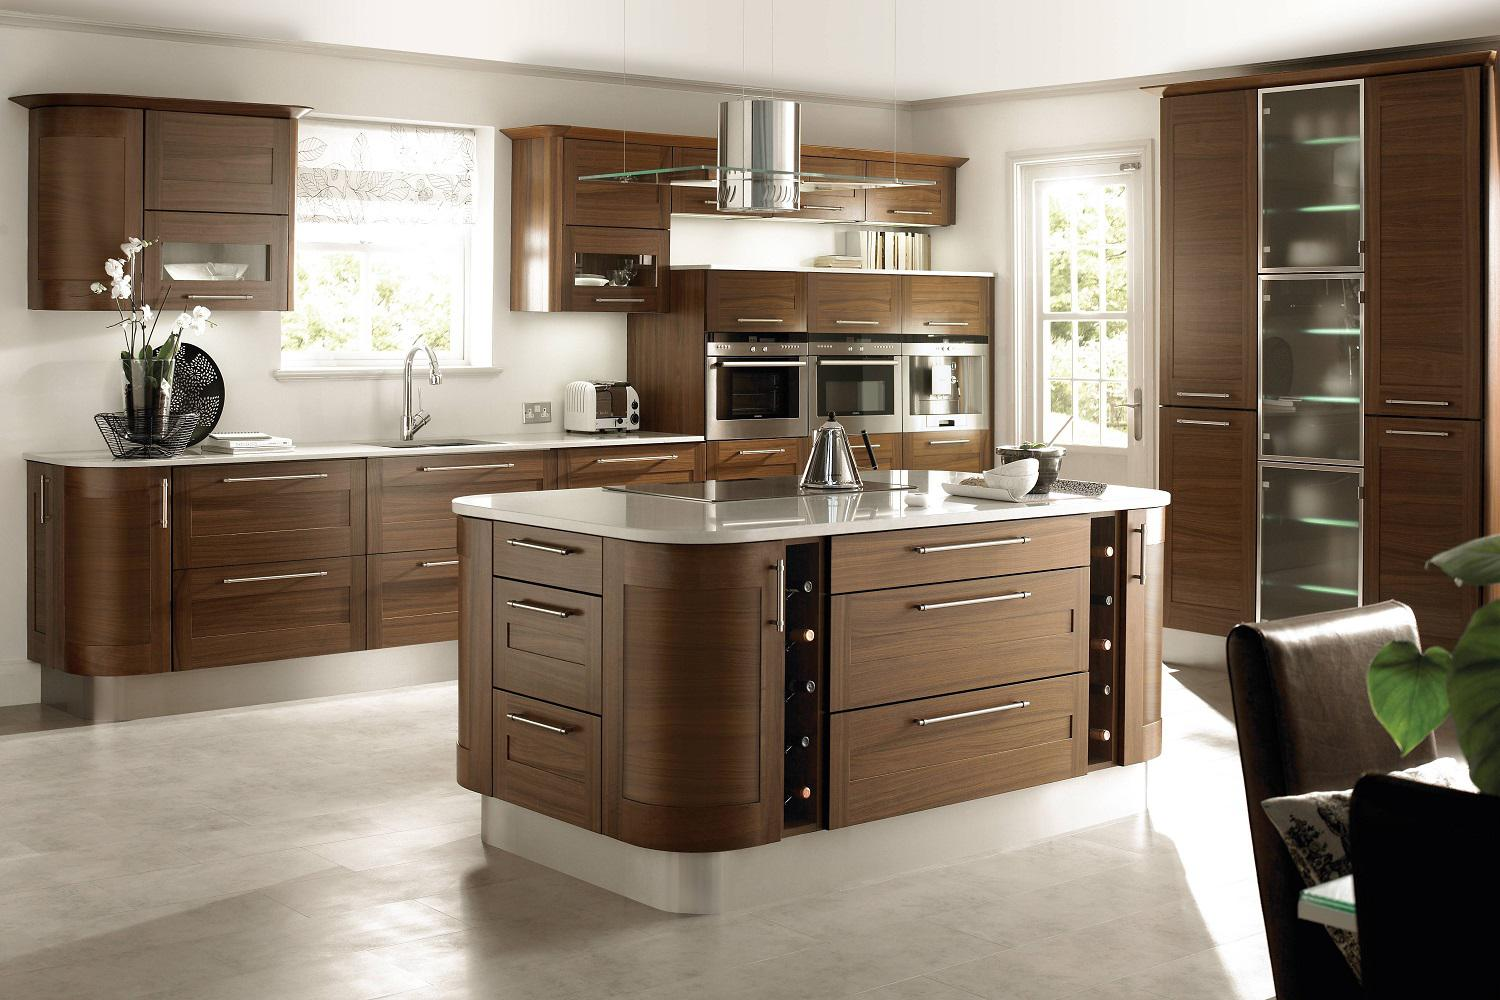 Image of: Wood Kitchen Design Ideas